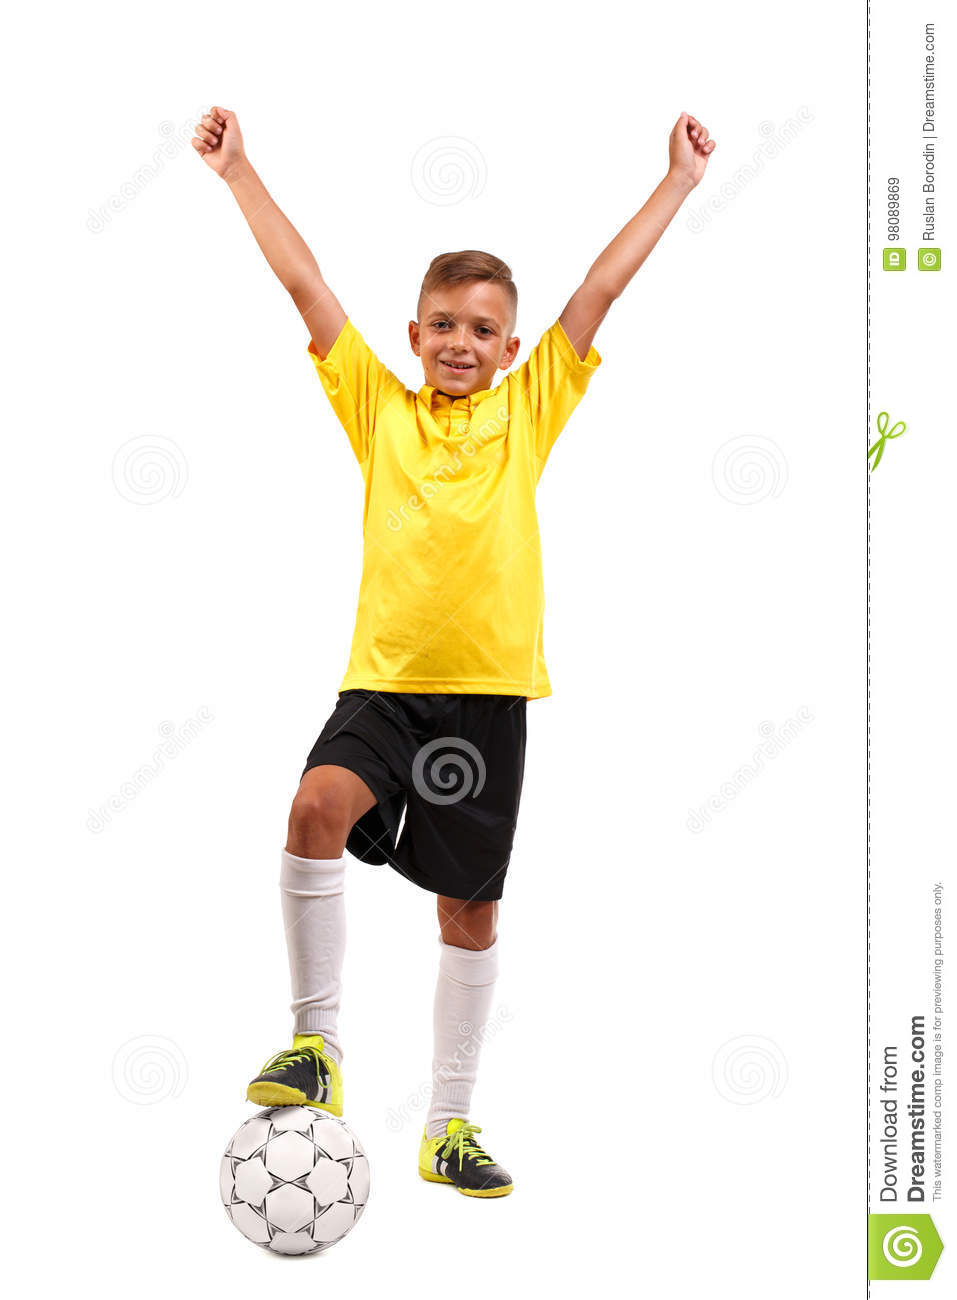 A happy kid with his leg on a soccer ball. A cheerful child in a football uniform isolated on a white background. Sports